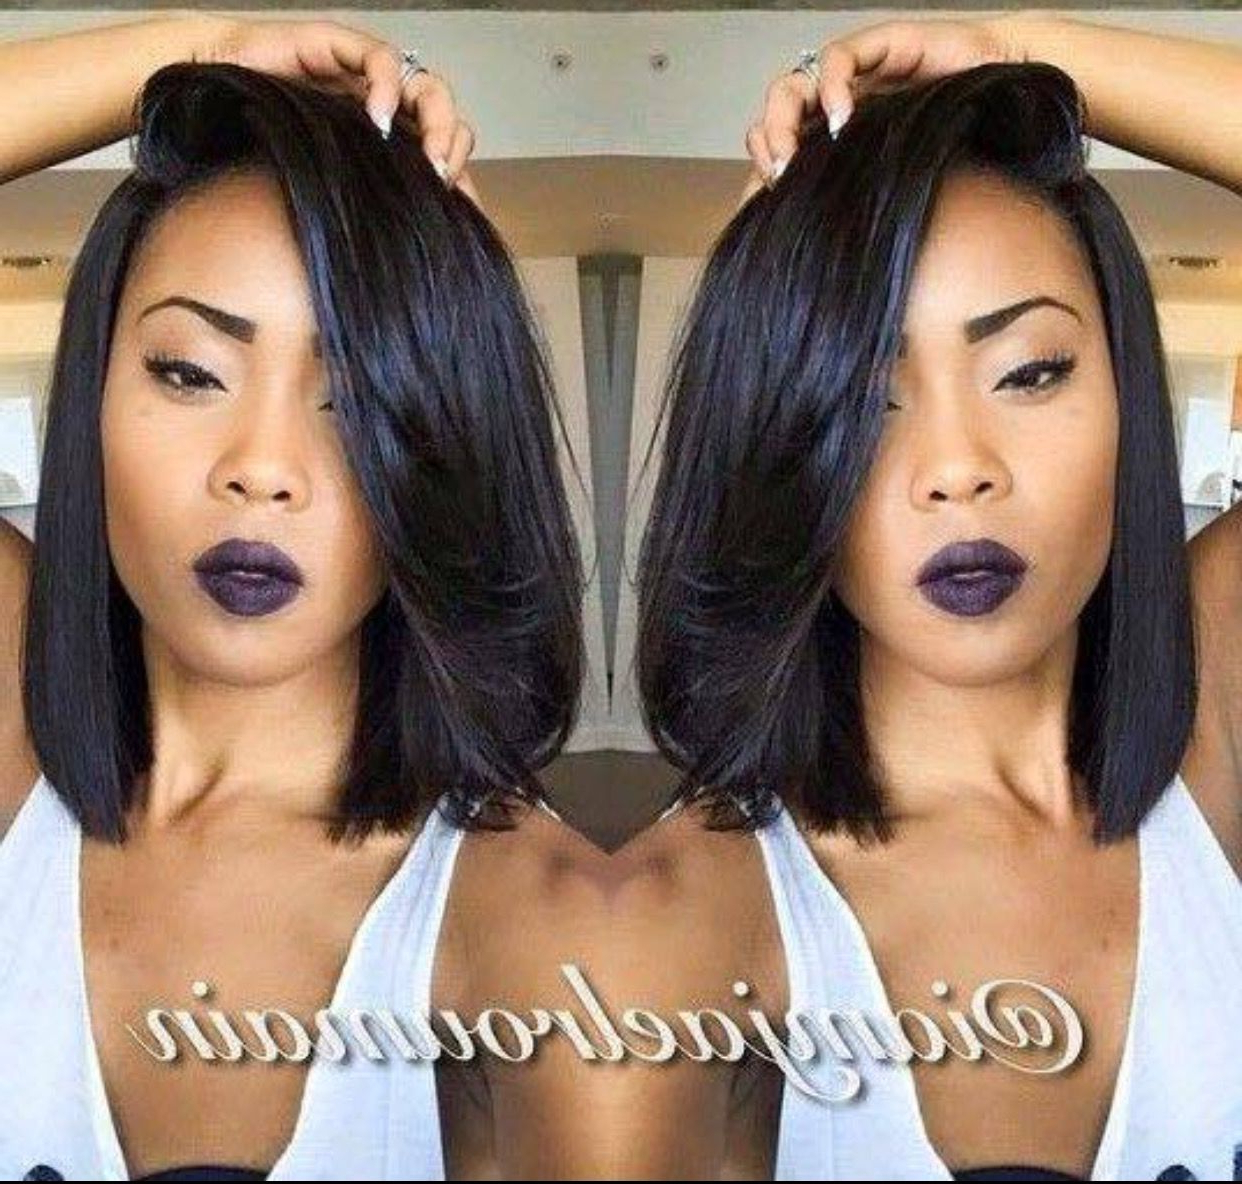 Hair, Hair With Regard To Most Popular Natural Medium Haircuts For Black Women (View 10 of 20)